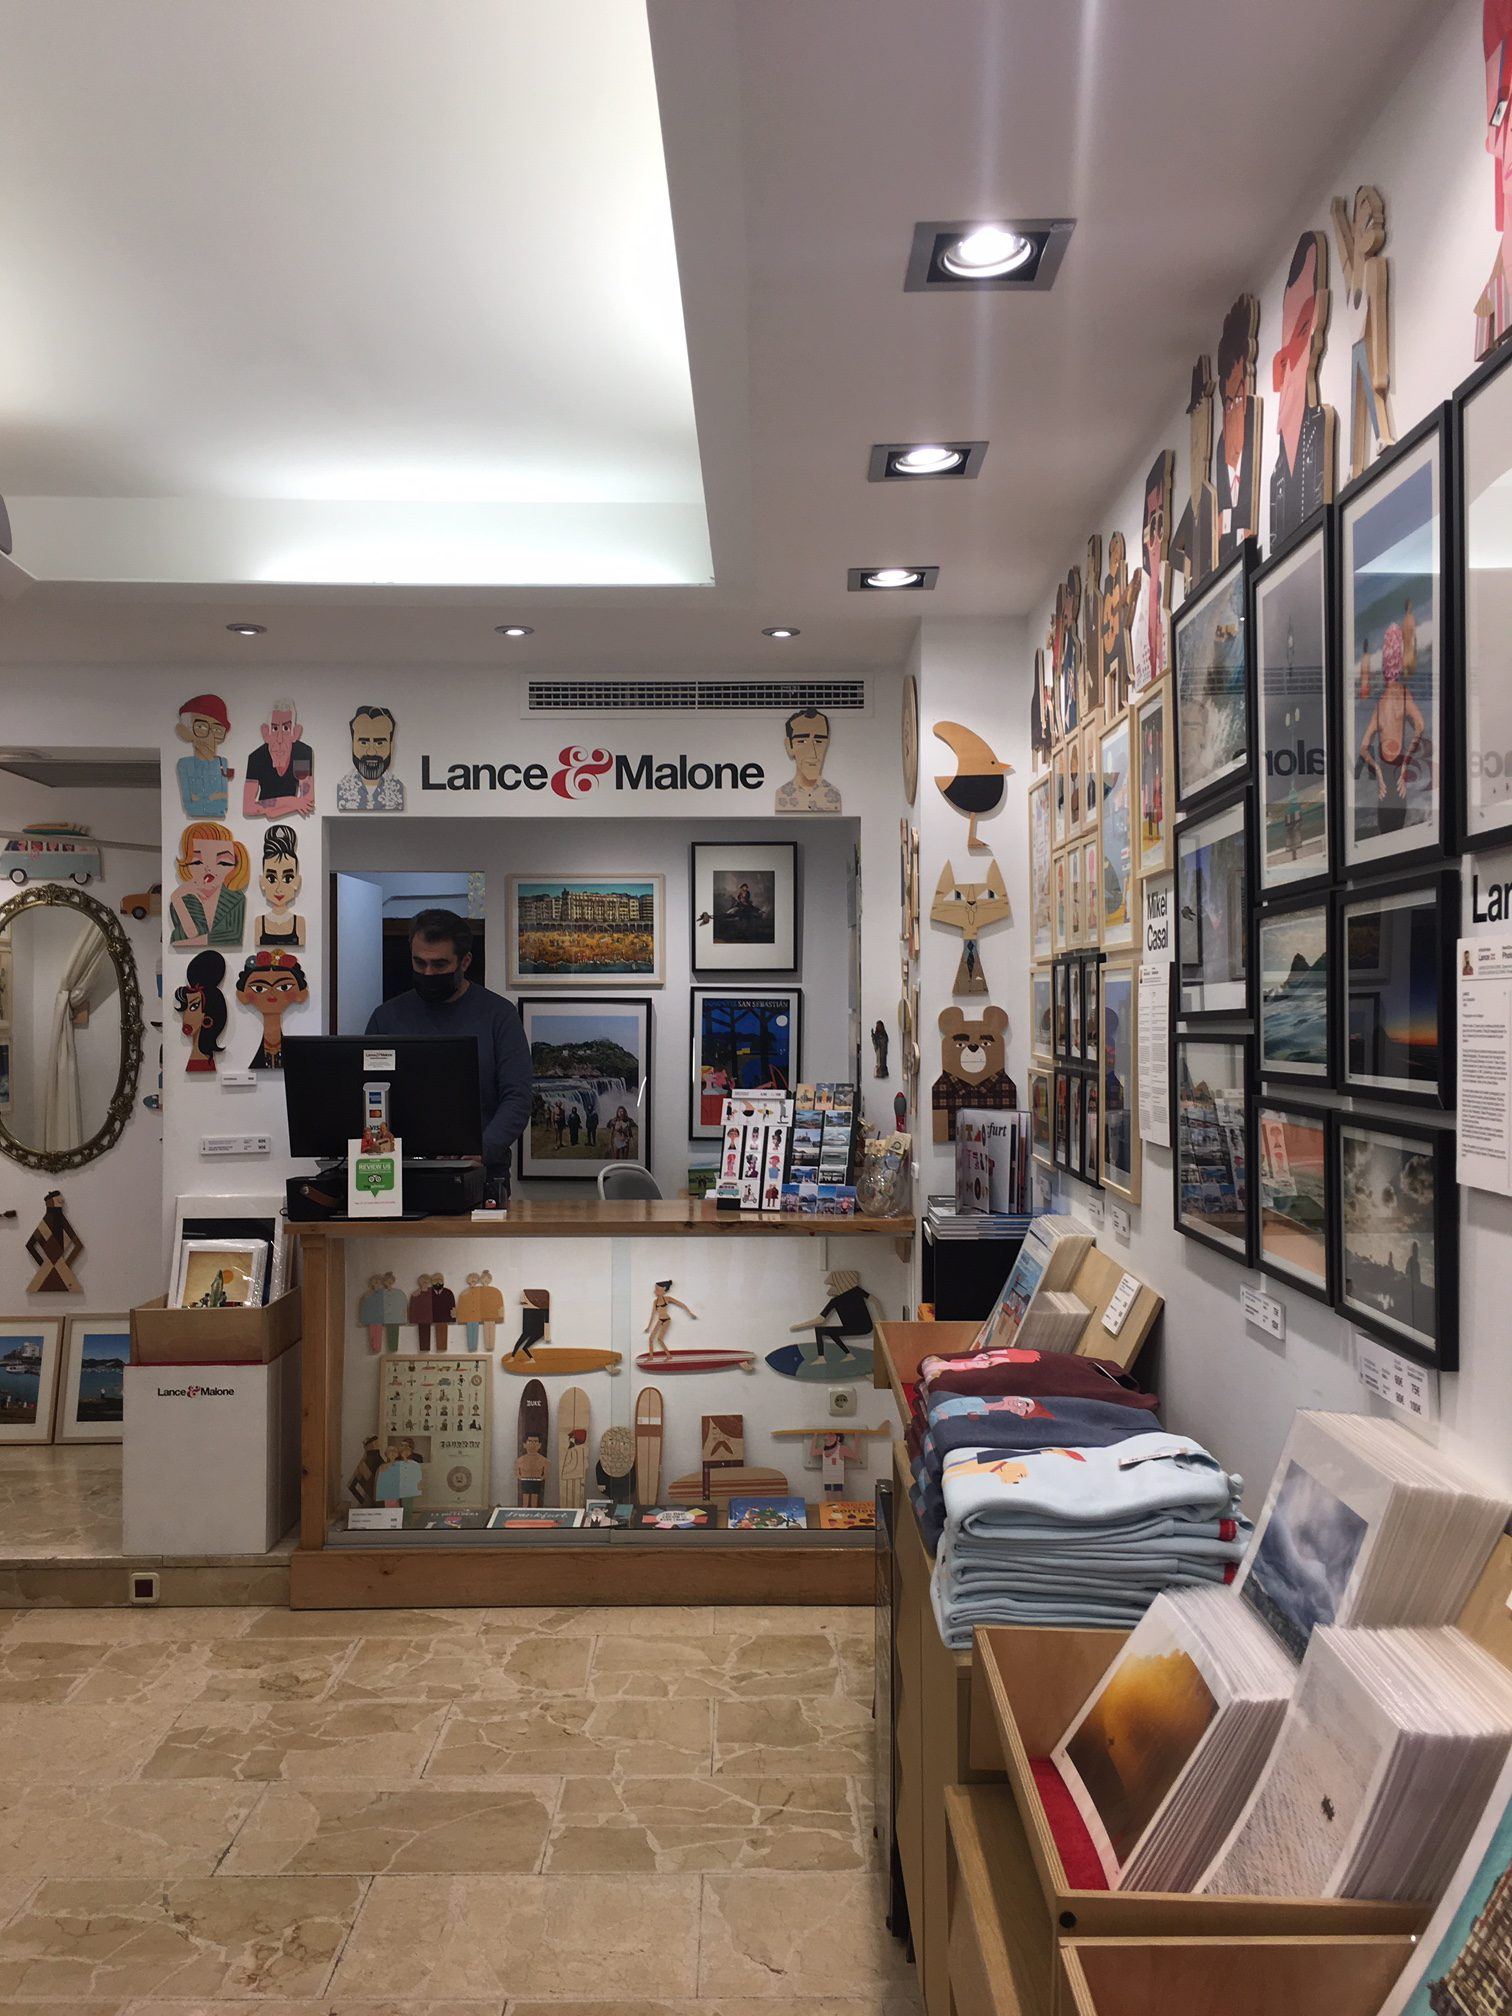 Lance & Malone art shop in San Sebastian